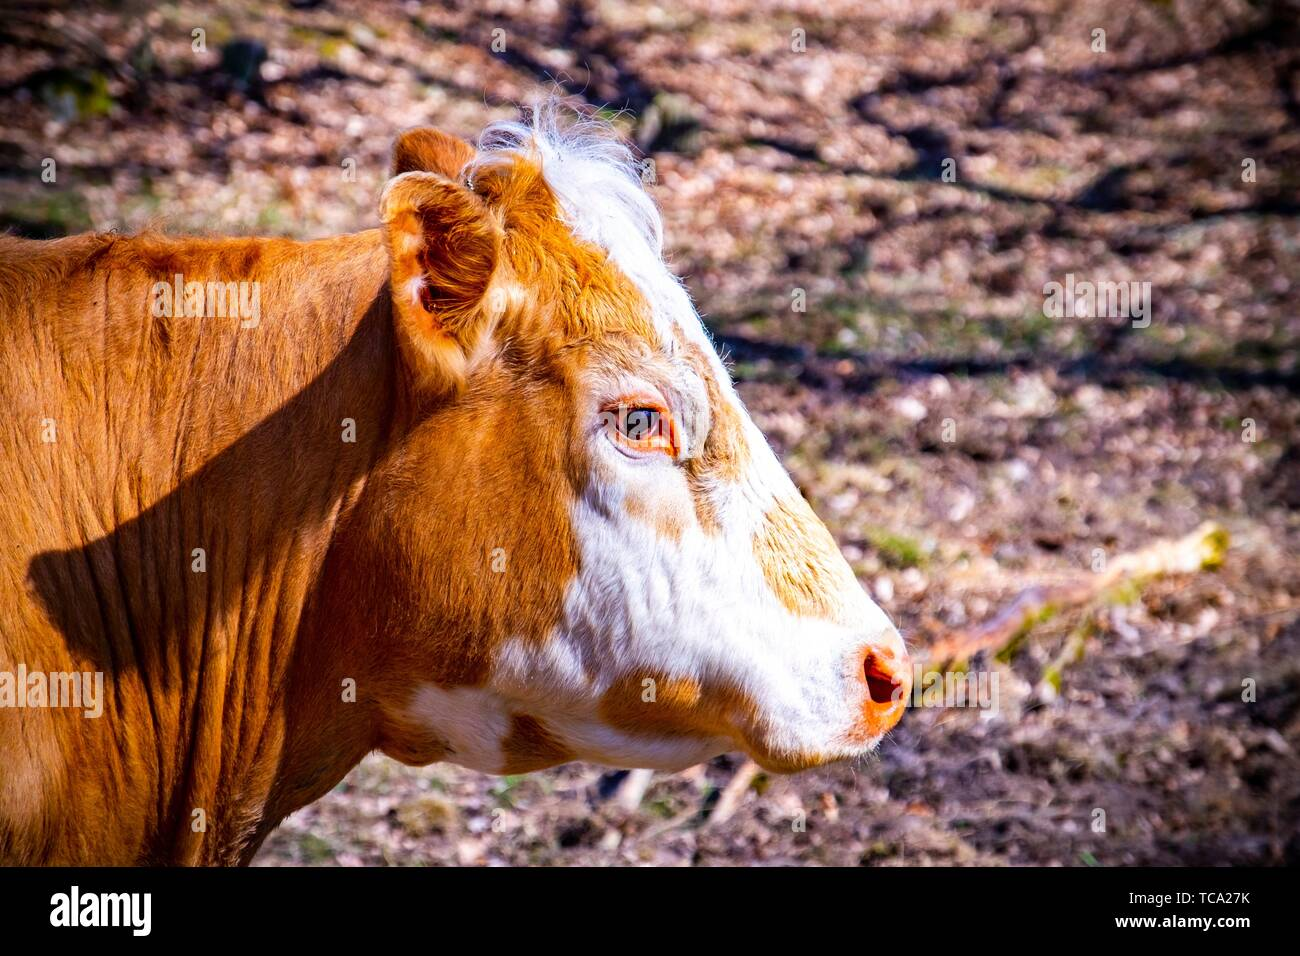 Portrait of a cow. - Stock Image